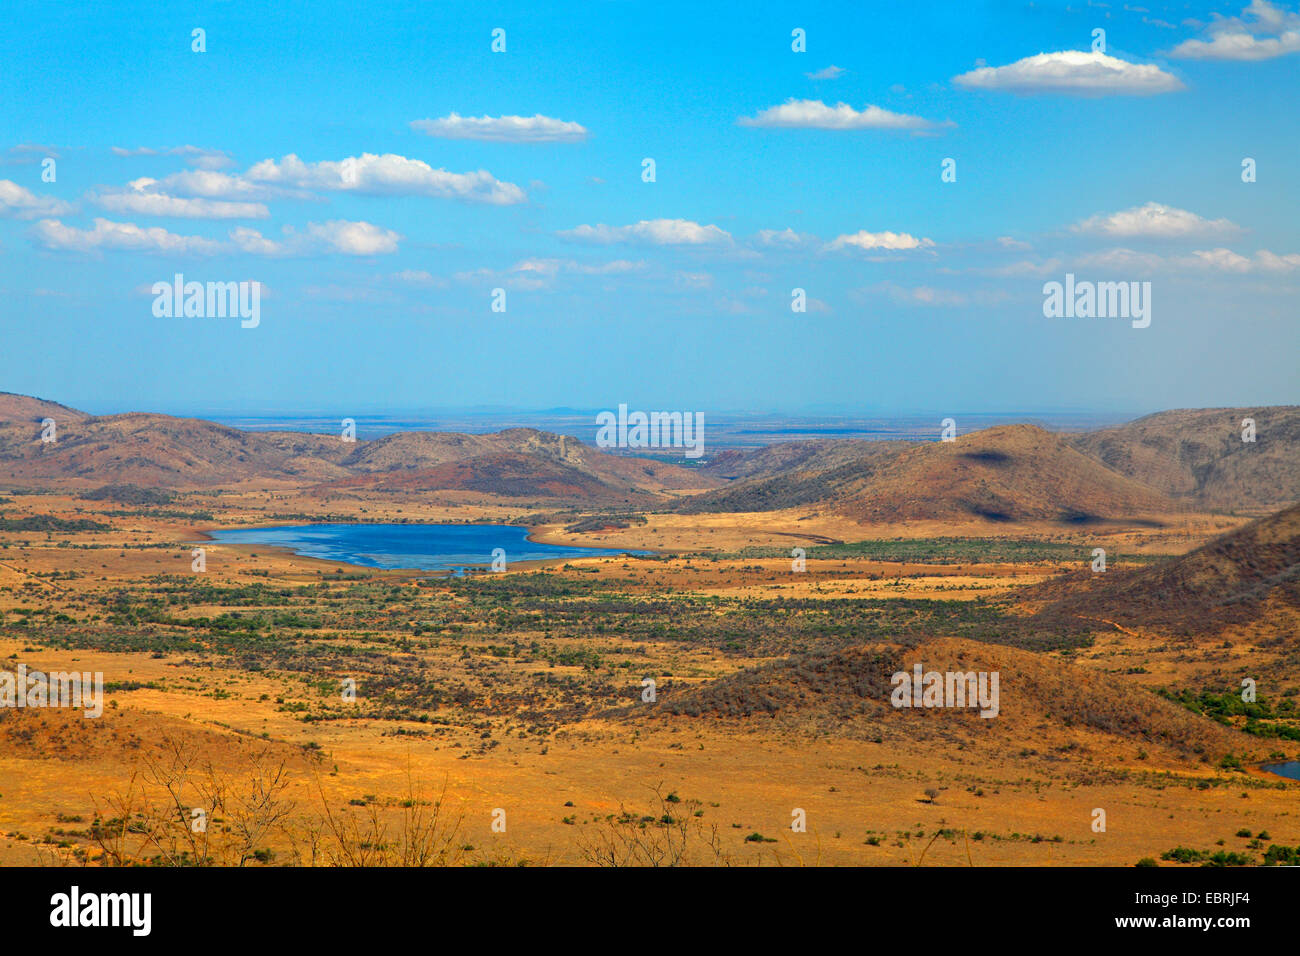 view from Lenong viewpoint to Mankwe lake, South Africa, North West Province, Pilanesberg National Park Stock Photo